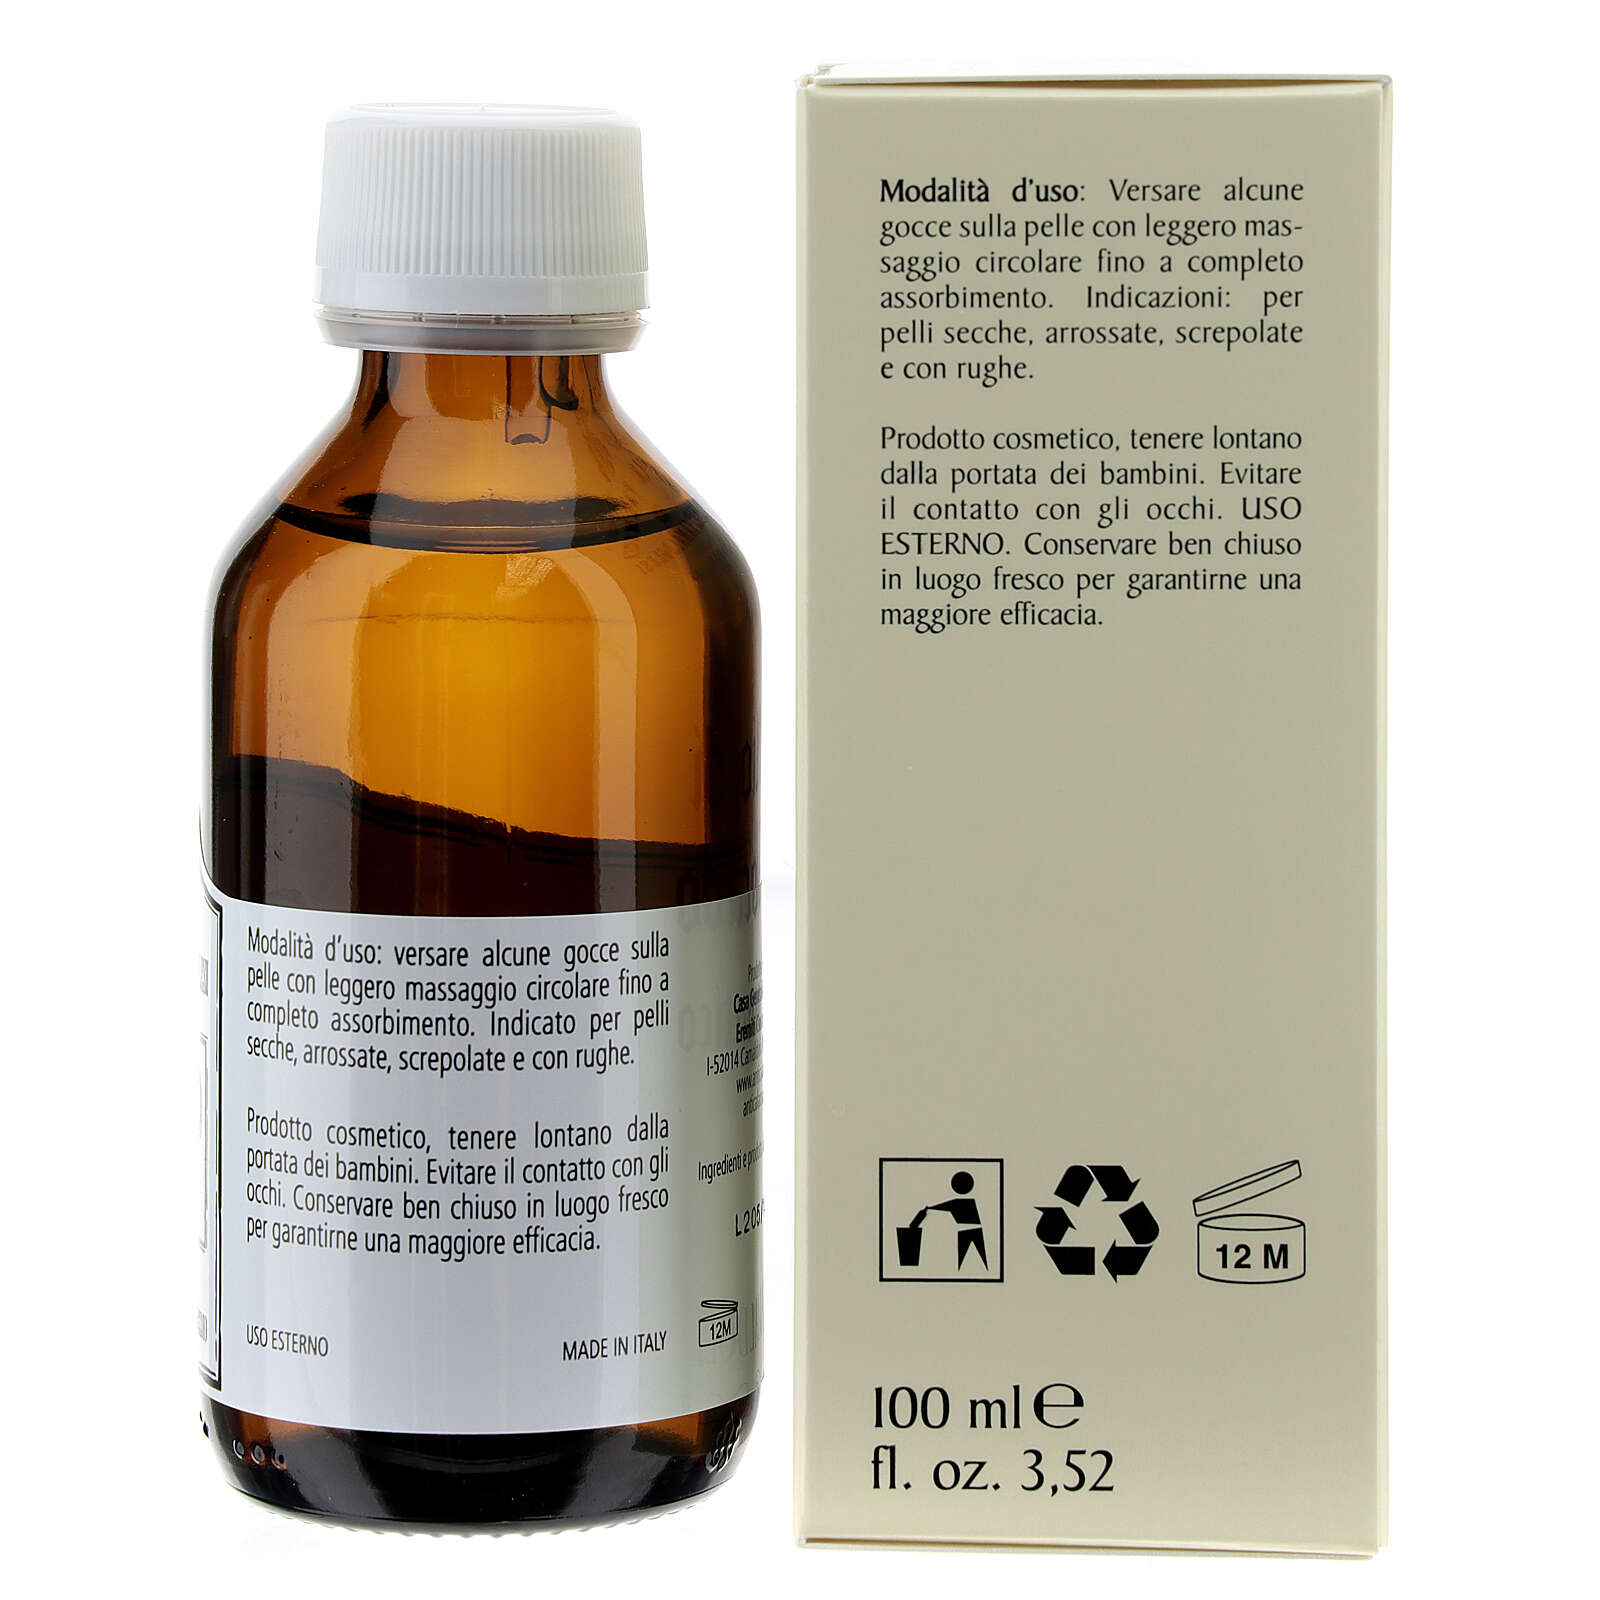 Aromatic Avocado Oil 100 ml, skin oil, Camaldoli 4